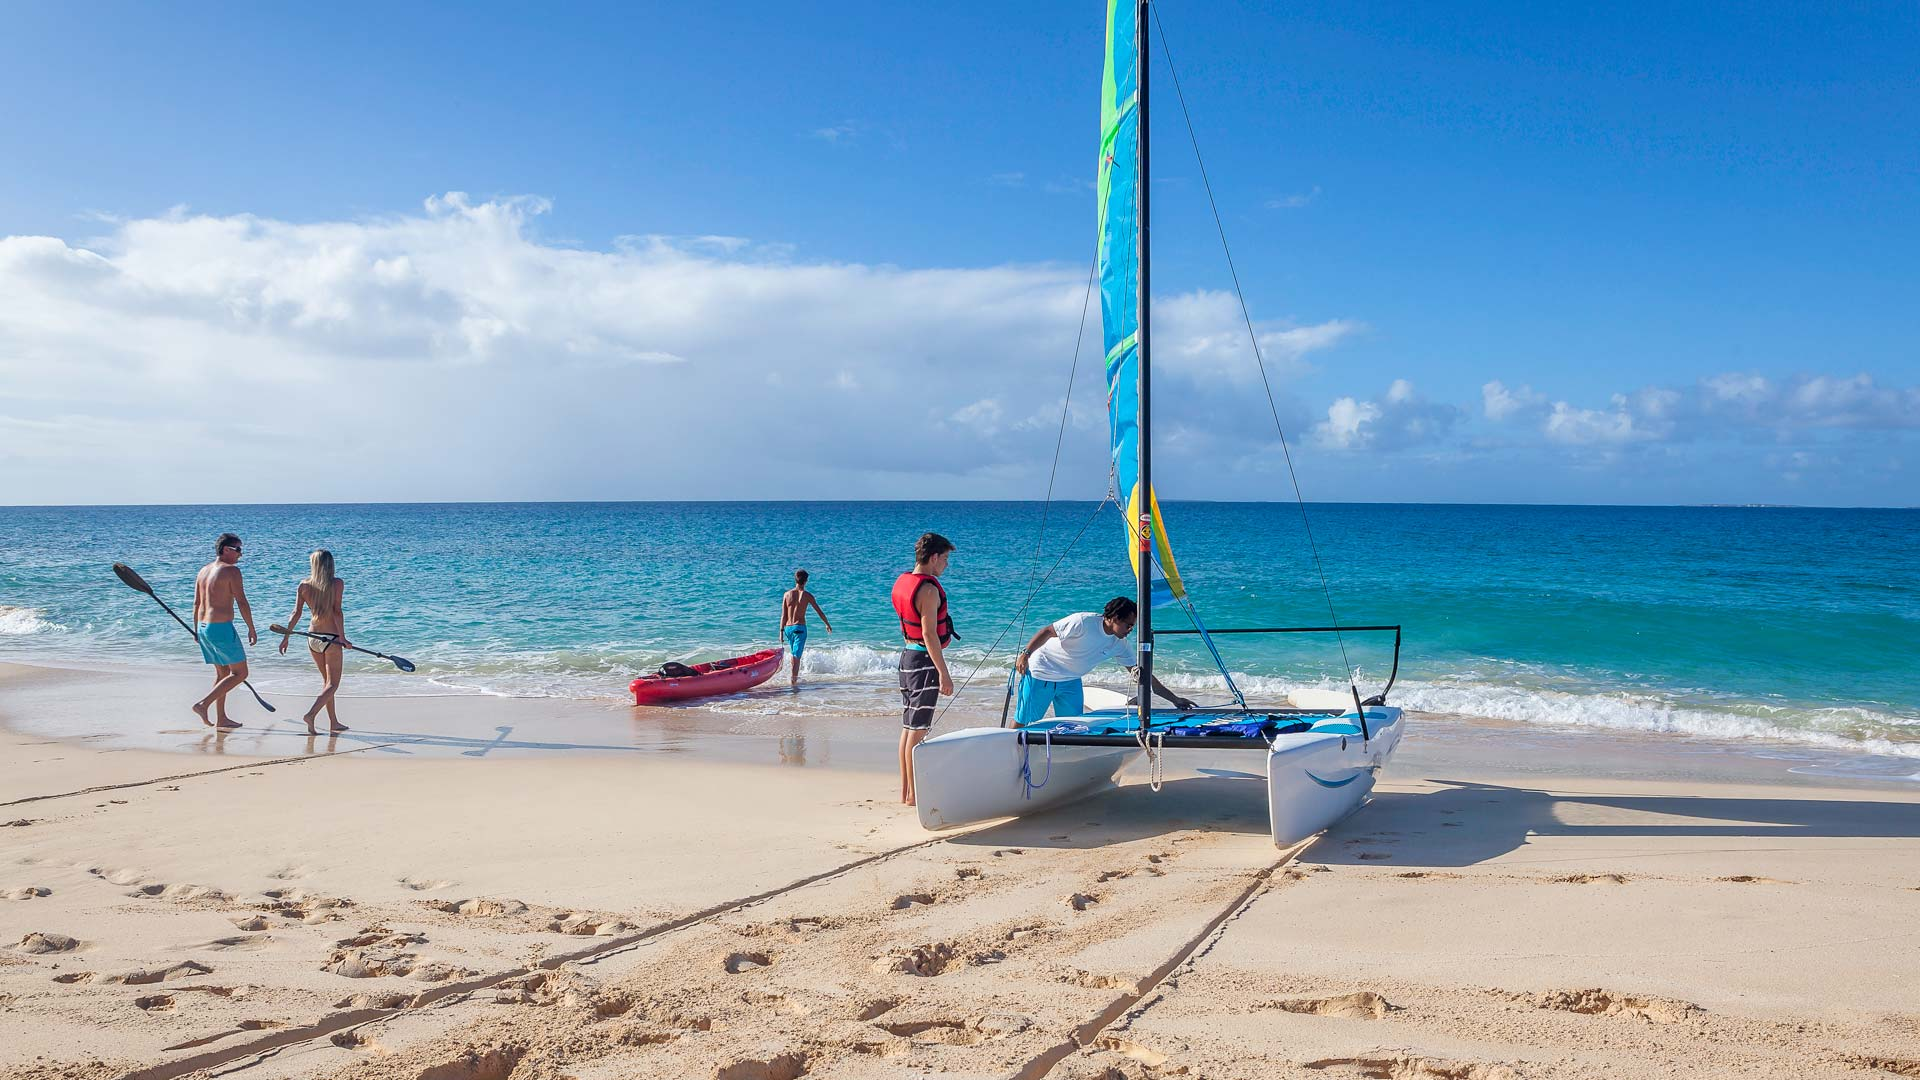 Cerulean Villa, Anguilla includes full water sports and gear for guests